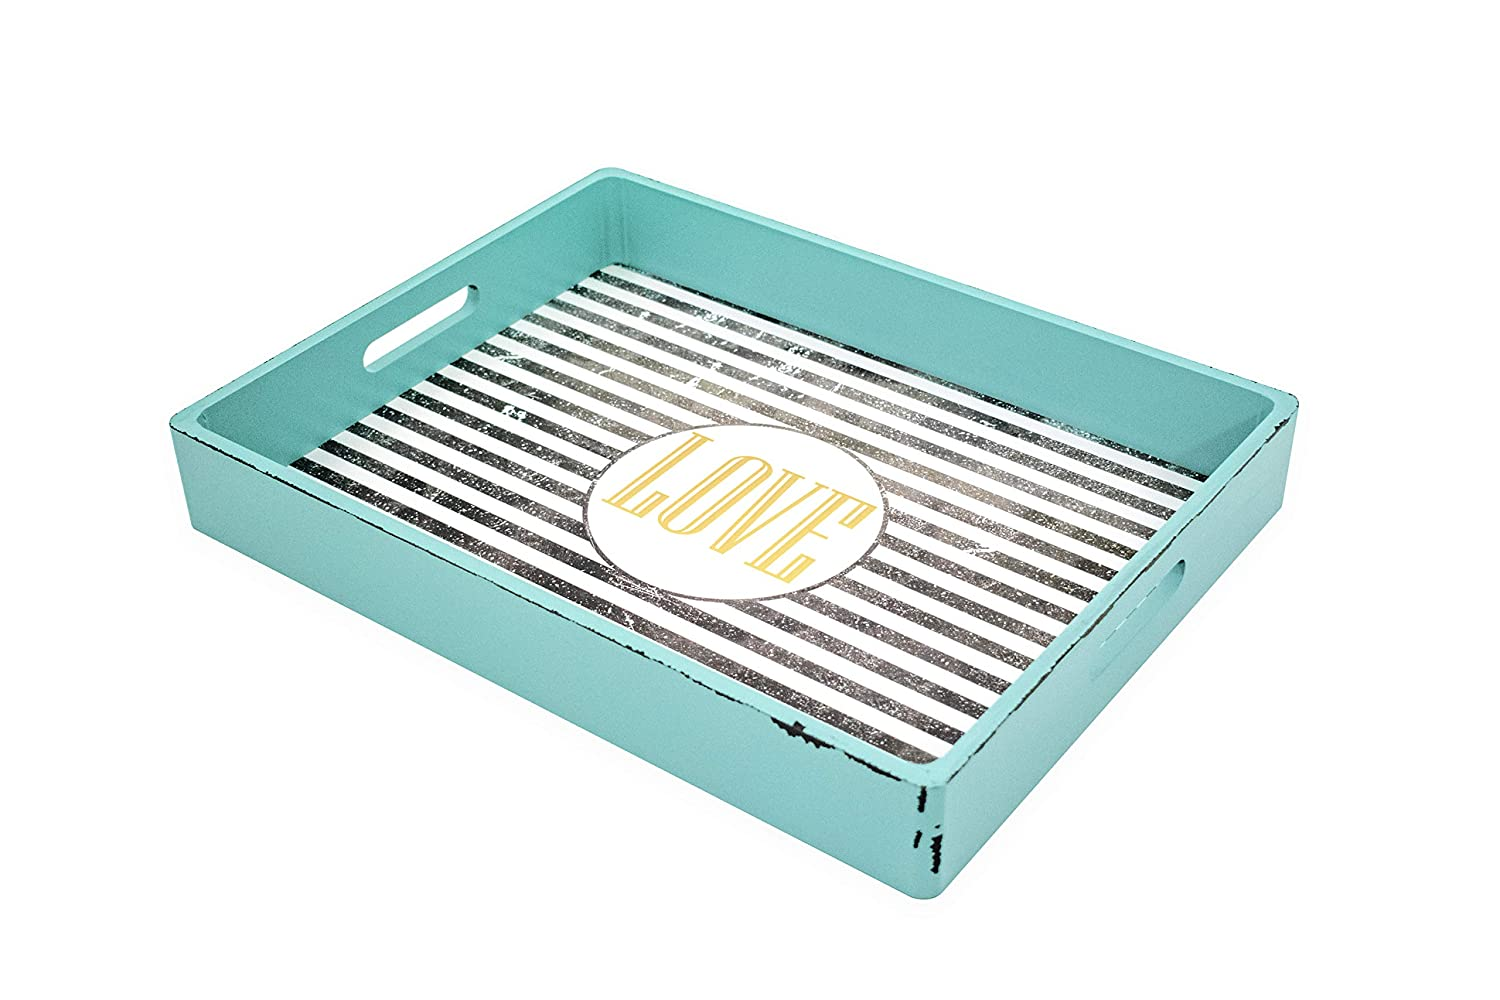 Blu Monaco Wood Serving Tray - Ottoman Tray - with Carrying Handles - Country Rustic Teal with Black and White Stripes - Love Printed in Gold in Center Circle